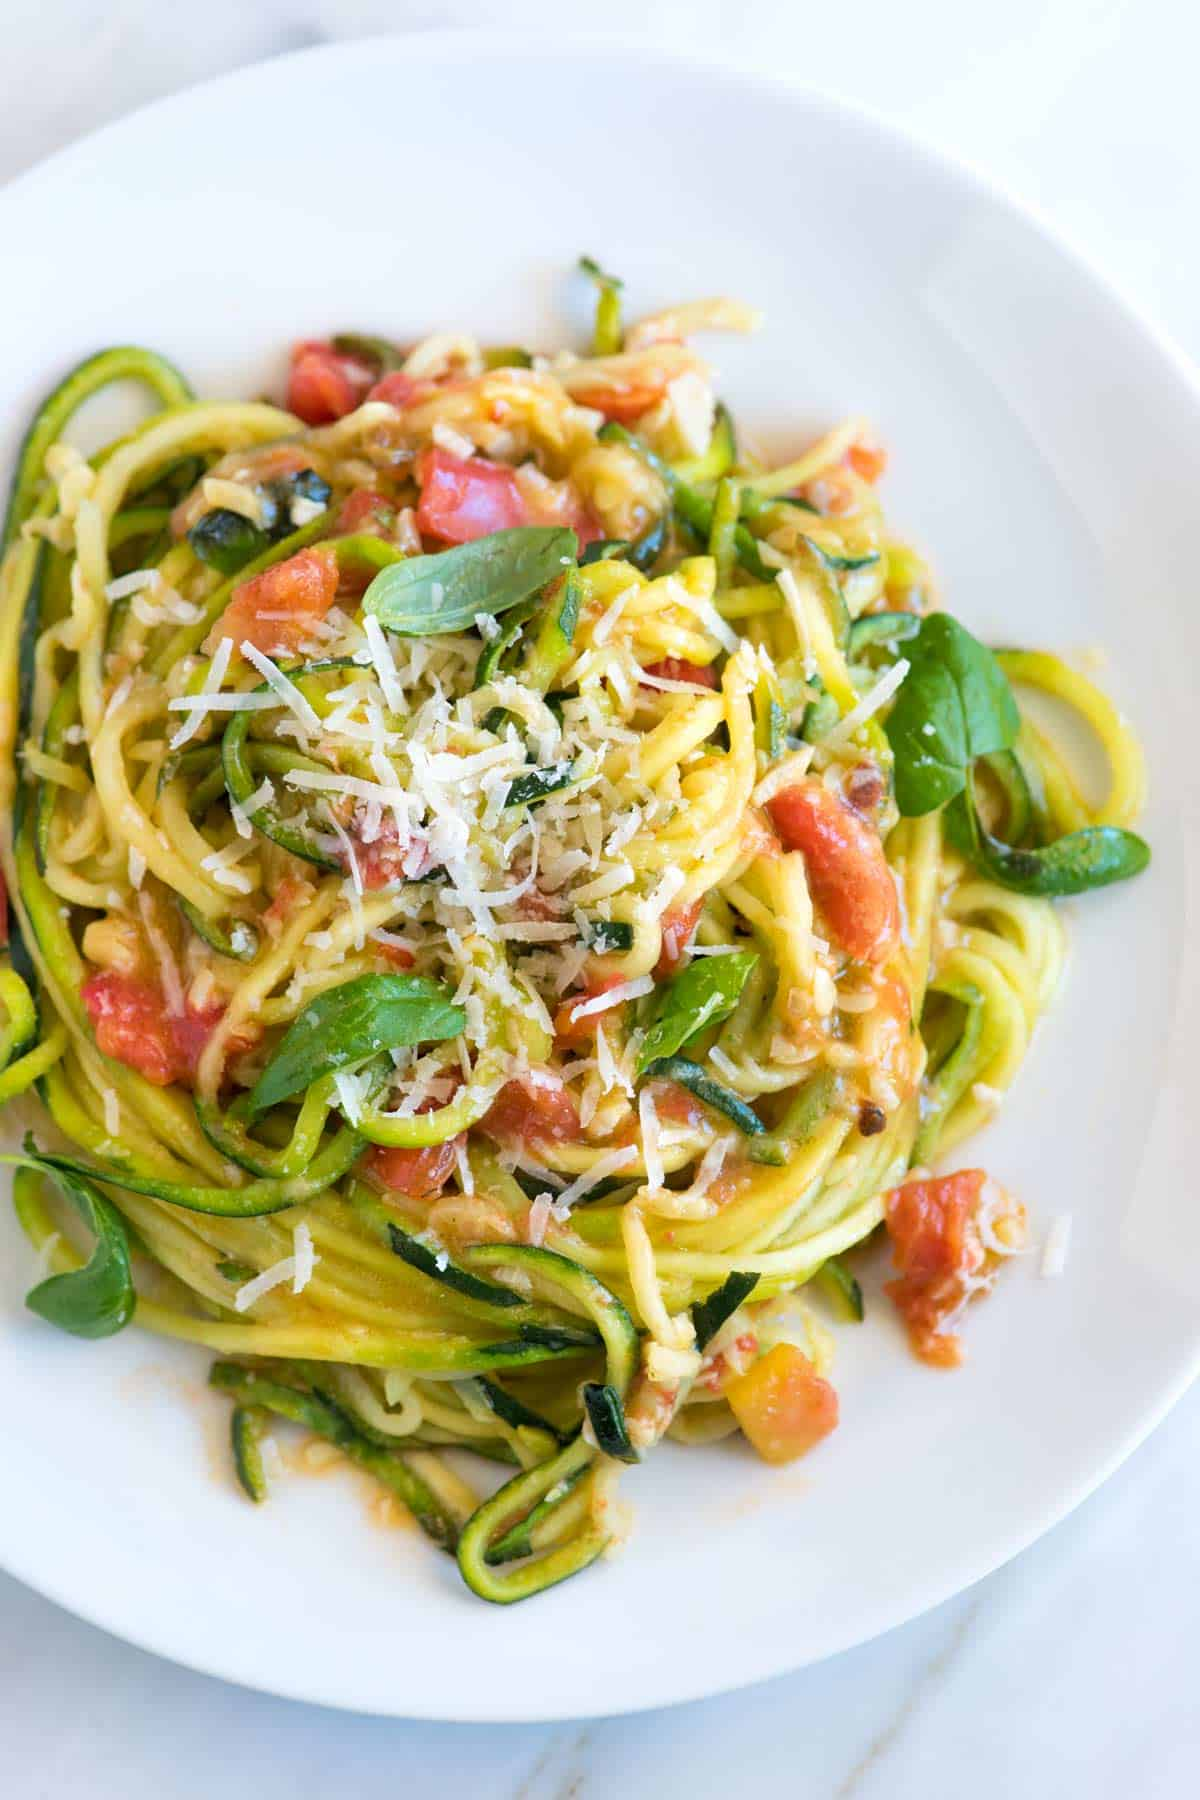 How to Make Guilt-Free, 20 Minute Garlic Parmesan Zucchini Pasta